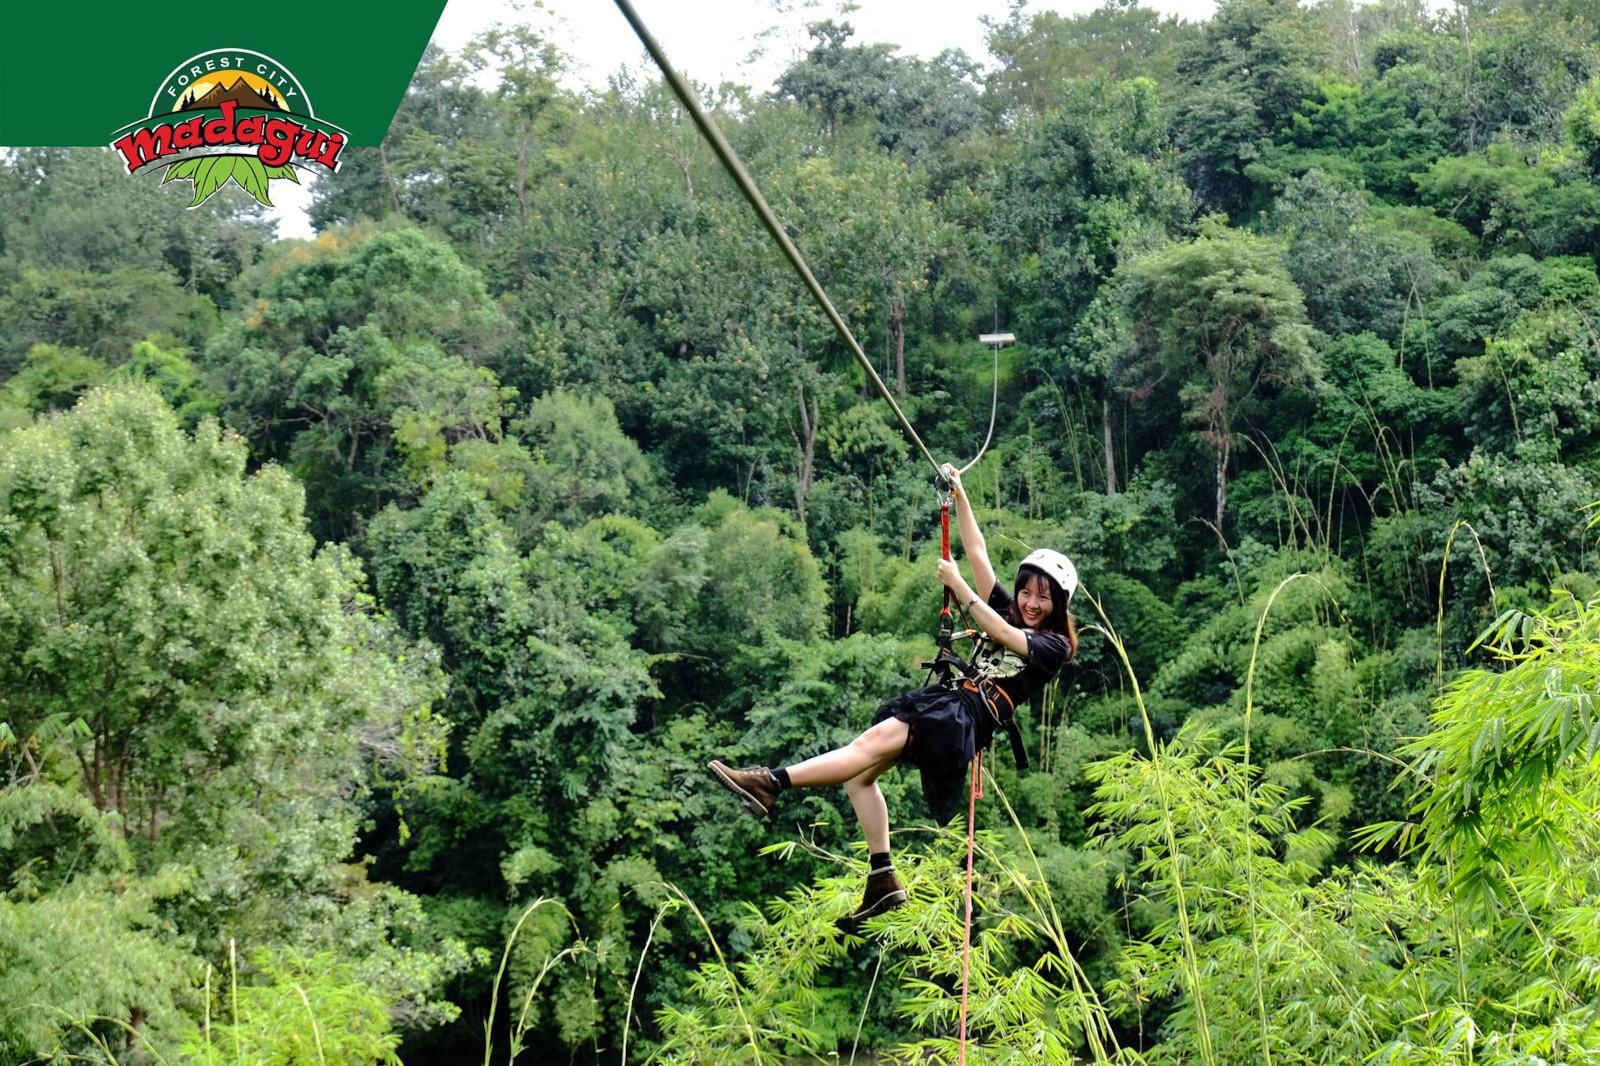 Image of a girl on the Madagui Forest City zipline in Lam Dong Province, Vietnam